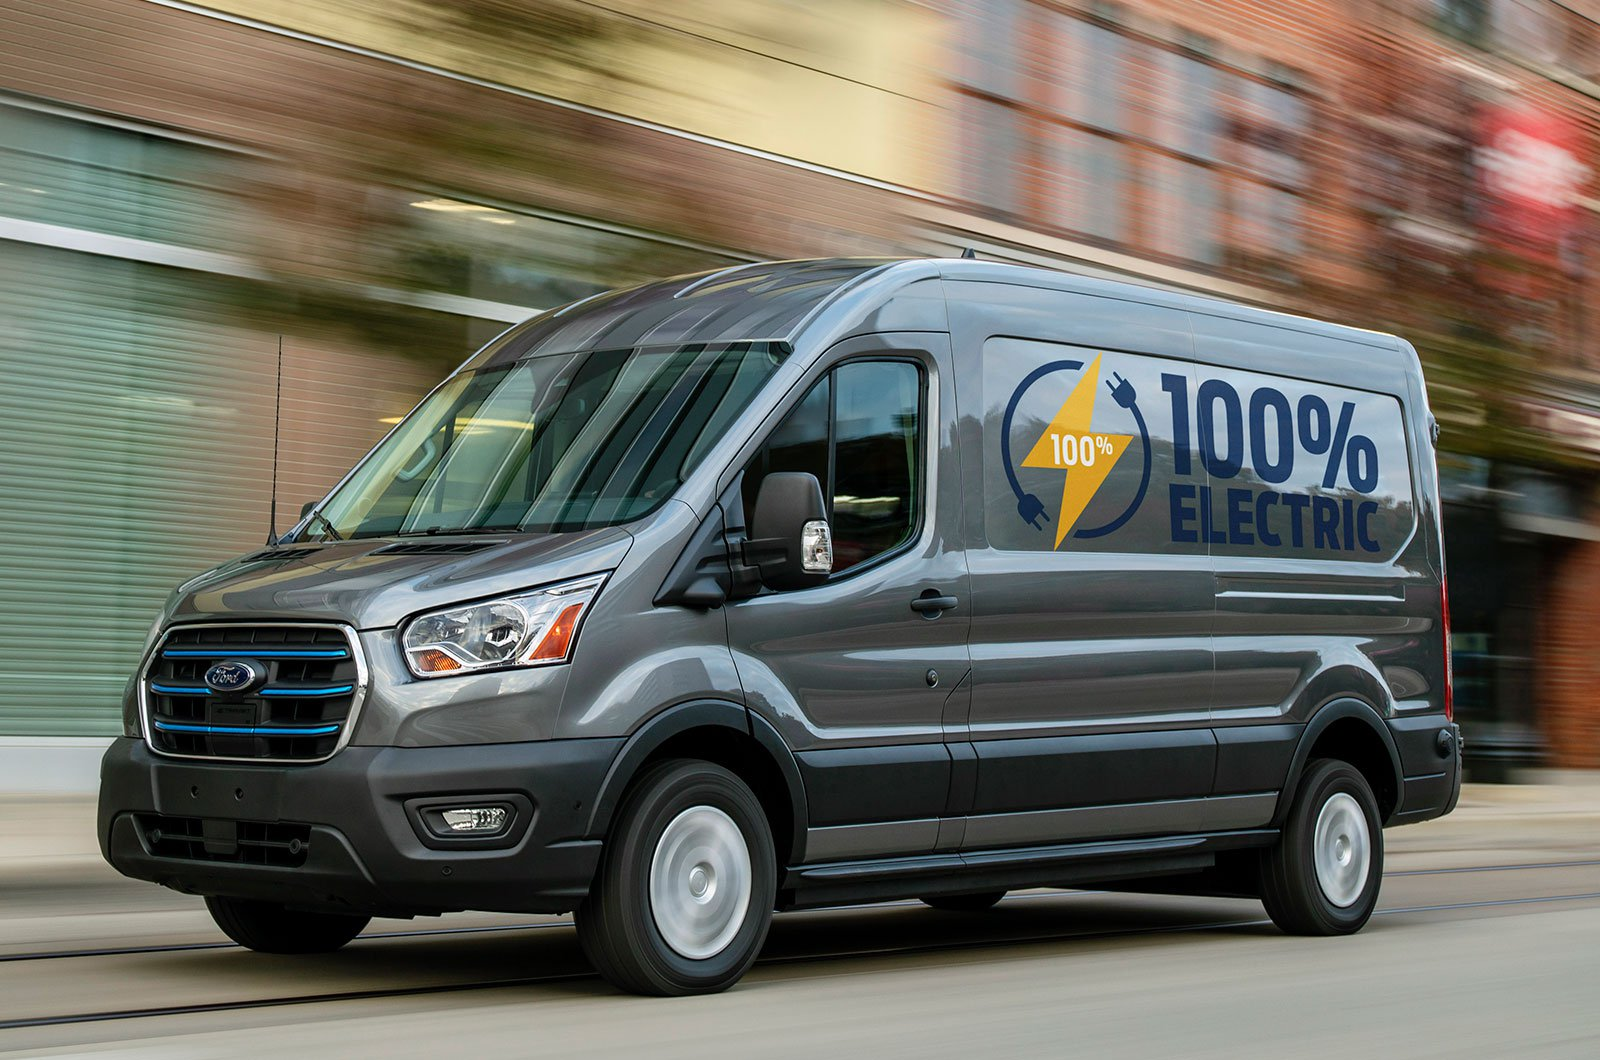 2022 Ford E-Transit front